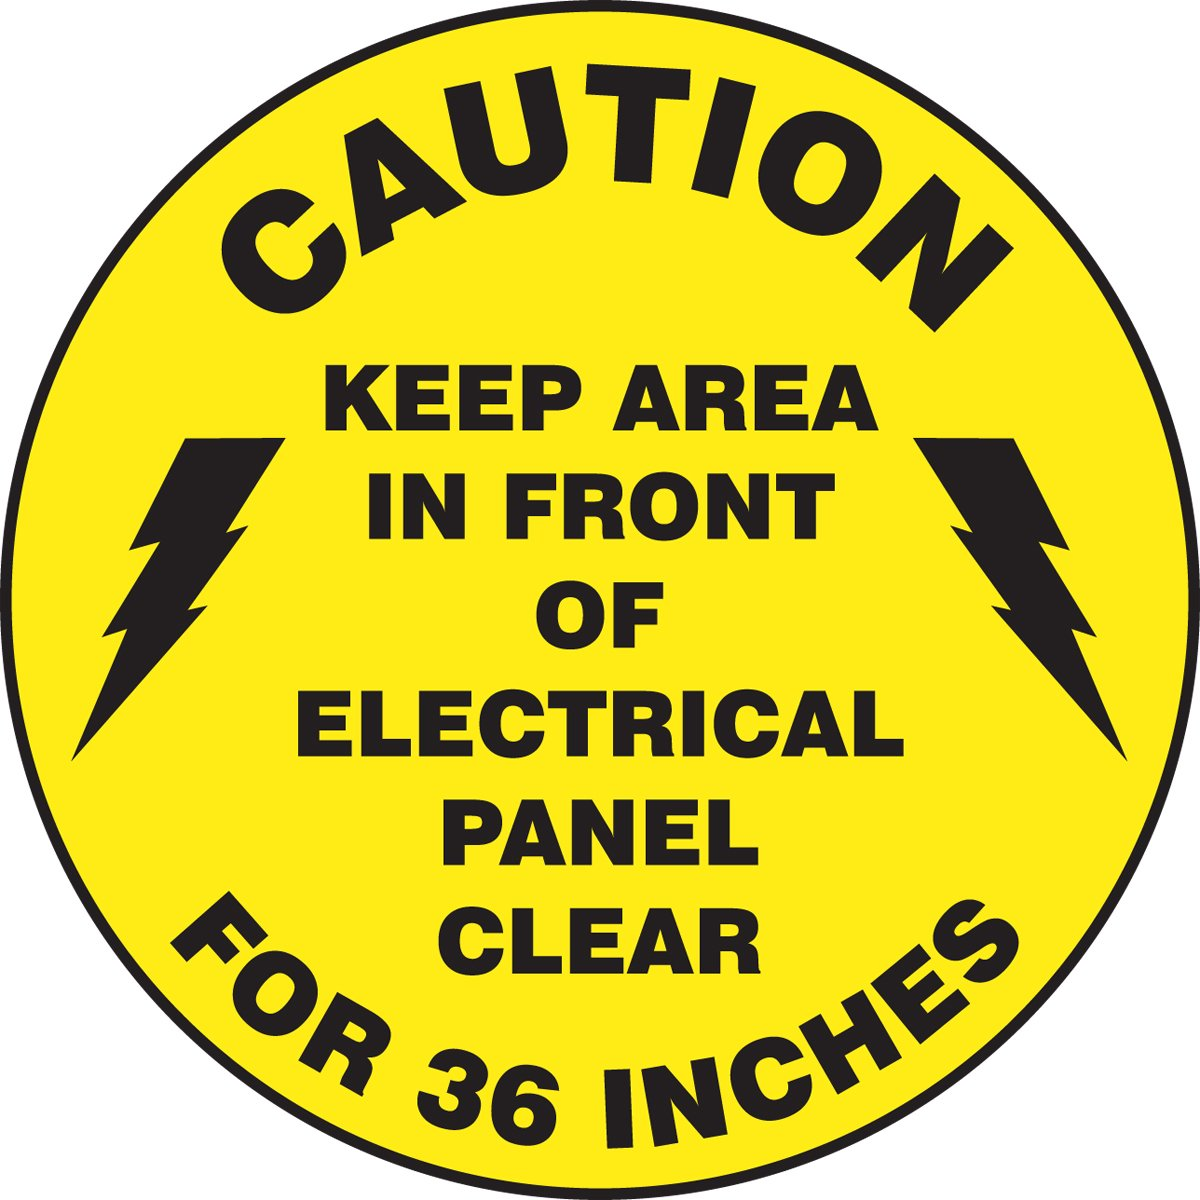 Accuform Signs MFS865 Slip-Gard Adhesive Vinyl Round Floor Sign, Legend''Caution Keep Area in Front of Electrical Panel Clear for 36 INCHES'', 8'' Diameter, Black on Yellow